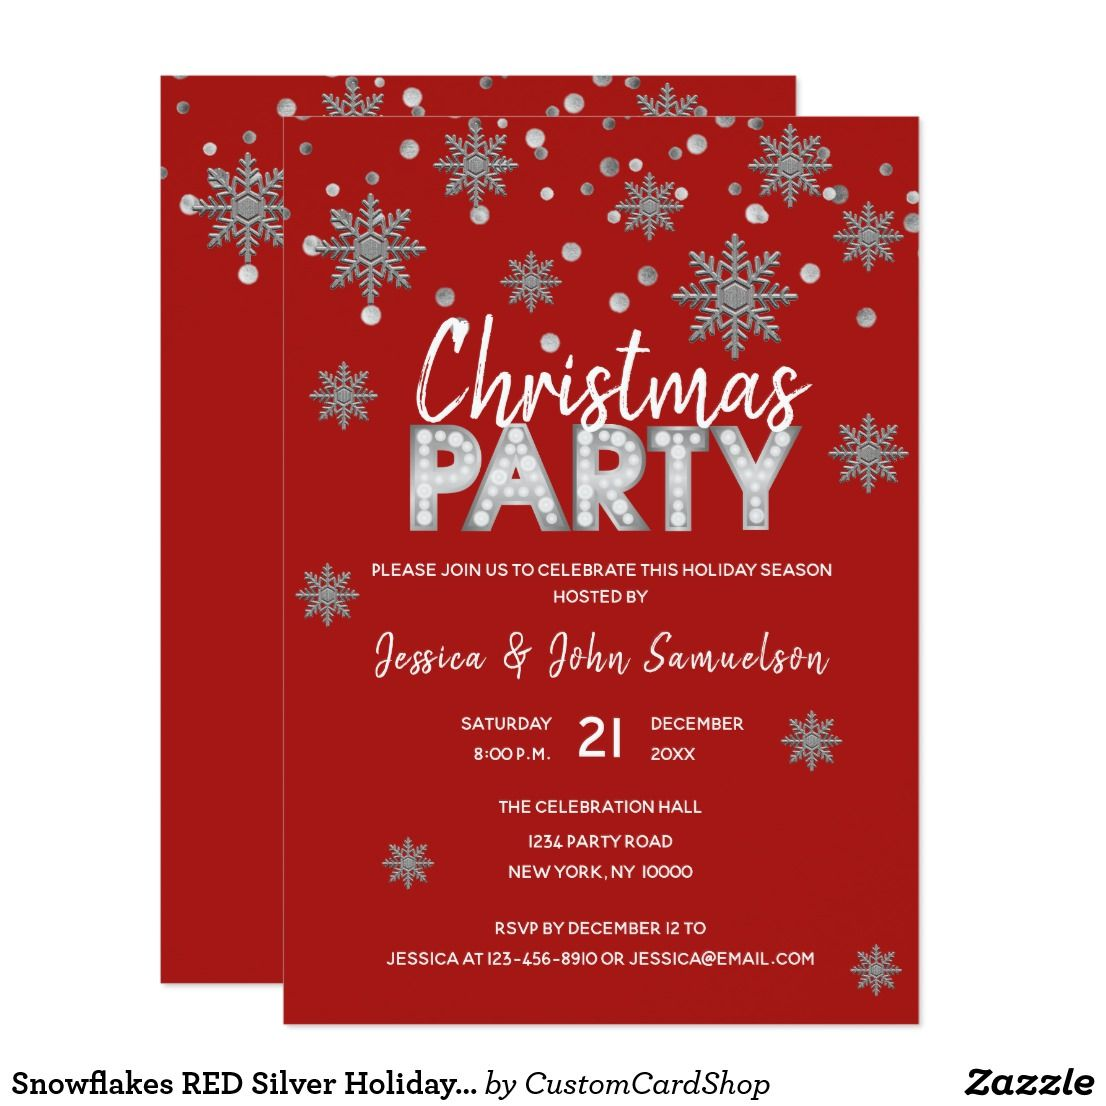 Snowflakes Red Silver Holiday Christmas Party Invitation Zazzle